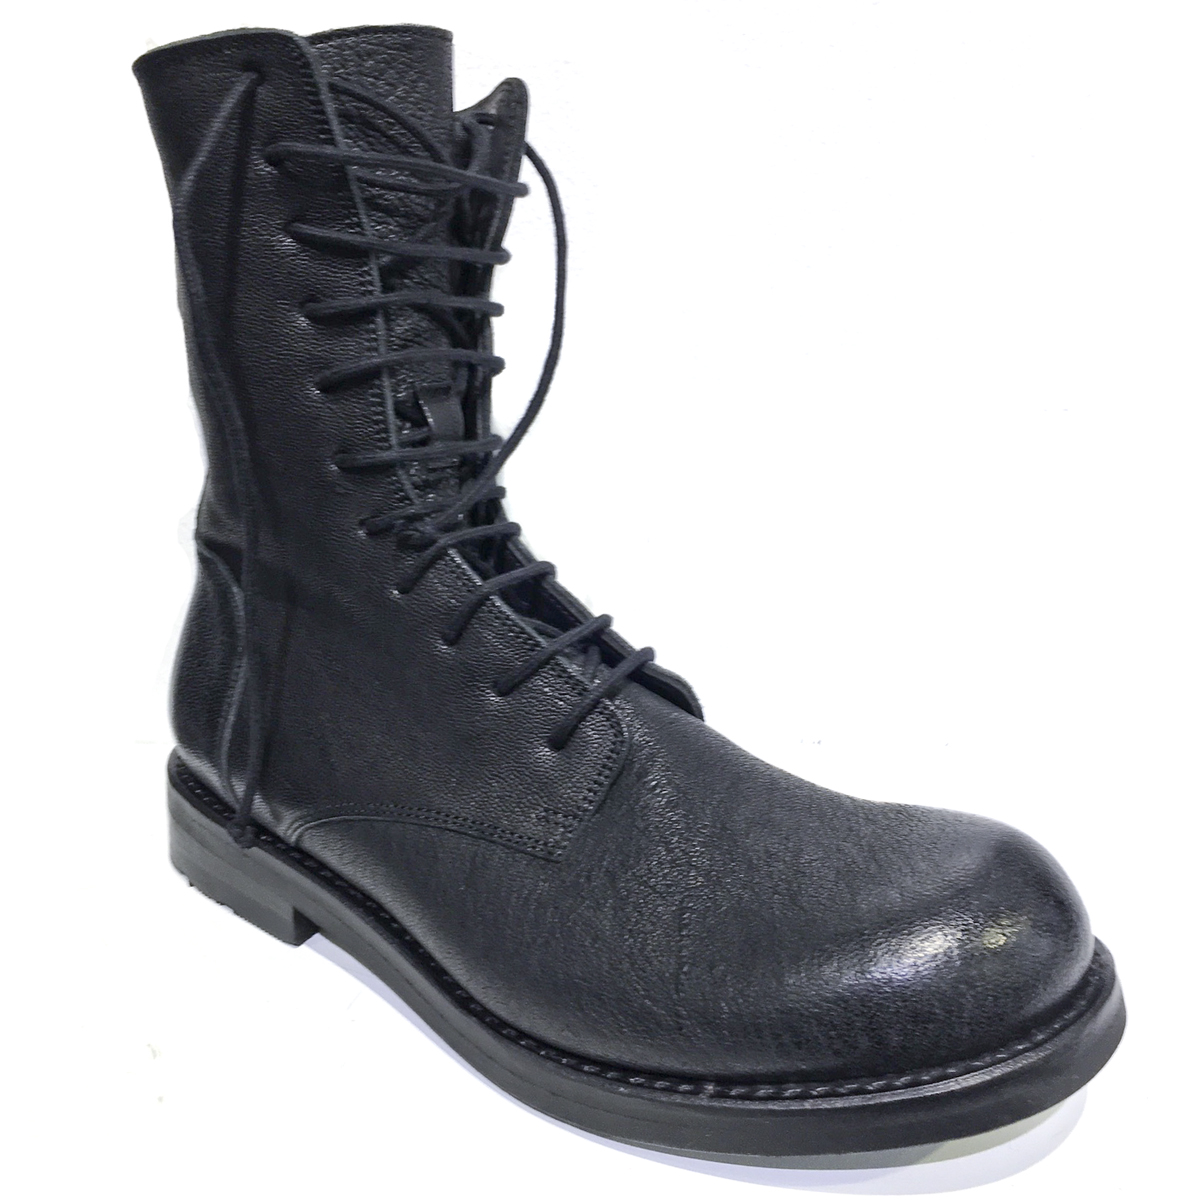 b20c7641c8f The Last Conspiracy Men's Leather Lace Up Combat Boots